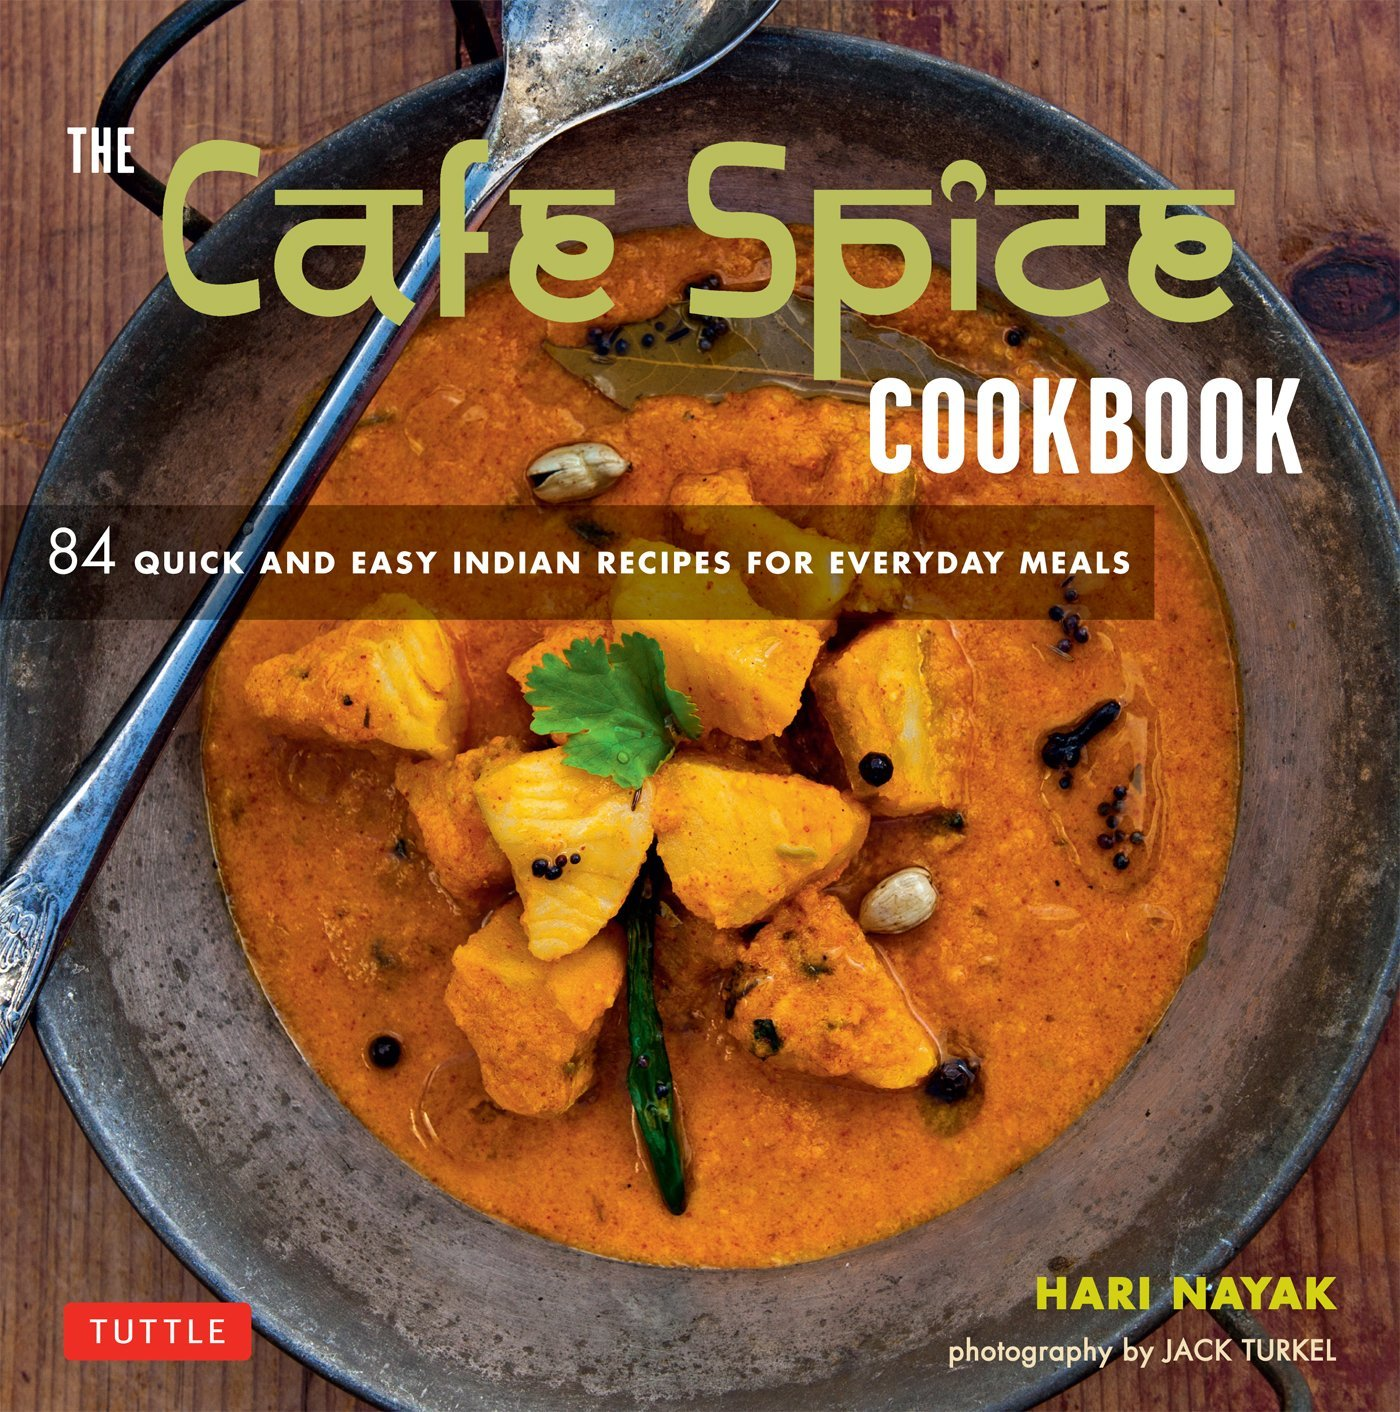 The cafe spice cookbook 84 quick and easy indian recipes for the cafe spice cookbook 84 quick and easy indian recipes for everyday meals forumfinder Gallery